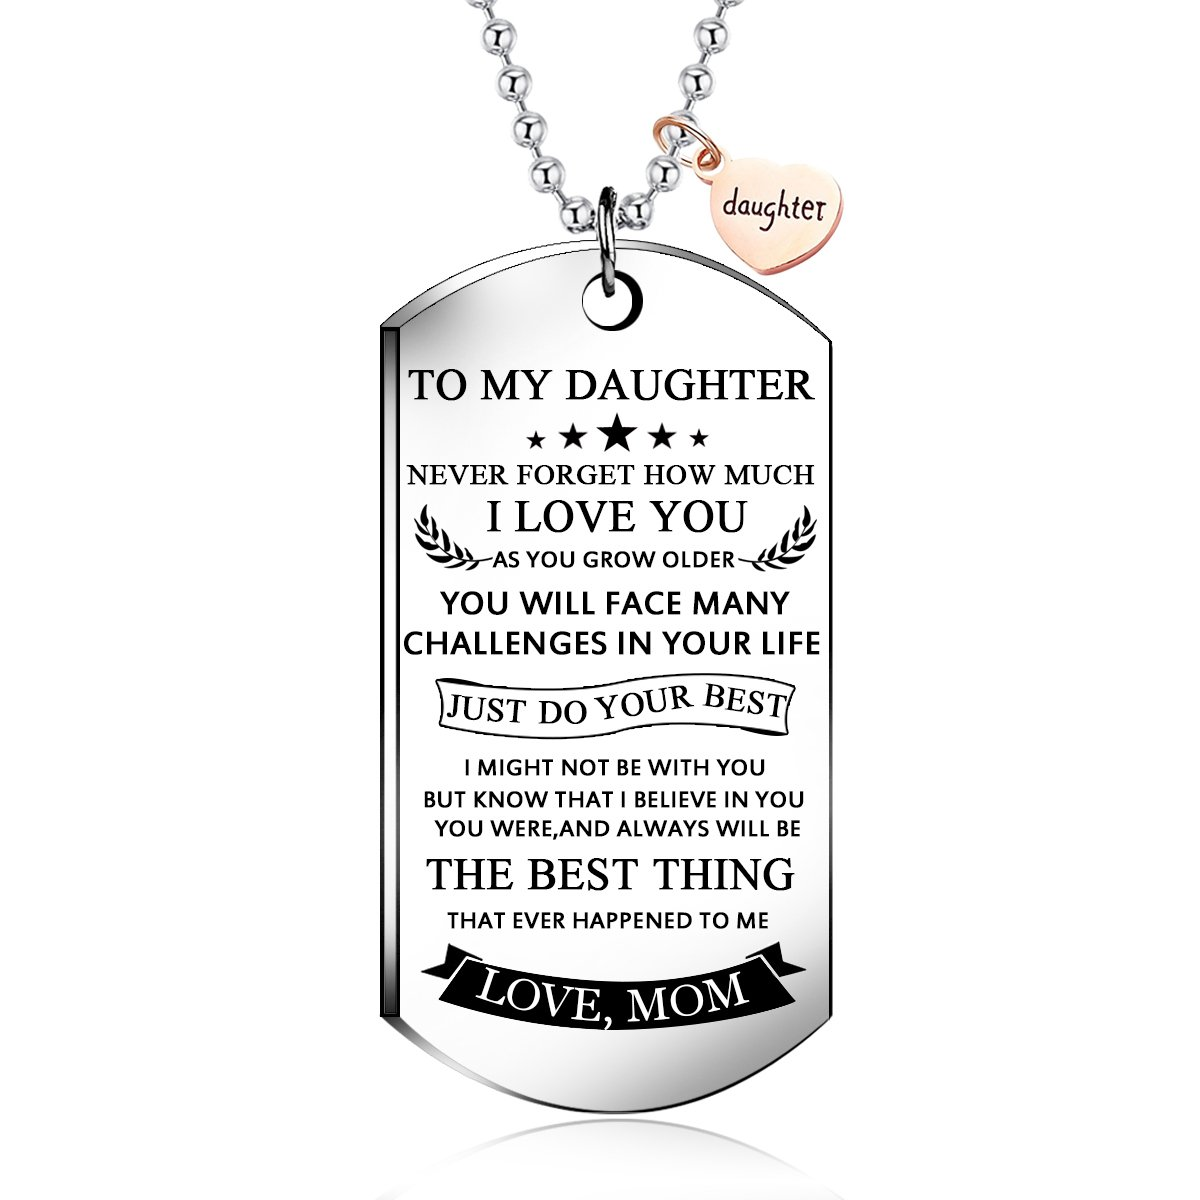 NOVLOVE To my daughter from mom Stainless Steel Dog Tag Letters To my  daughter never forget how love mom Pendant Necklace,Inspirational Gifts For